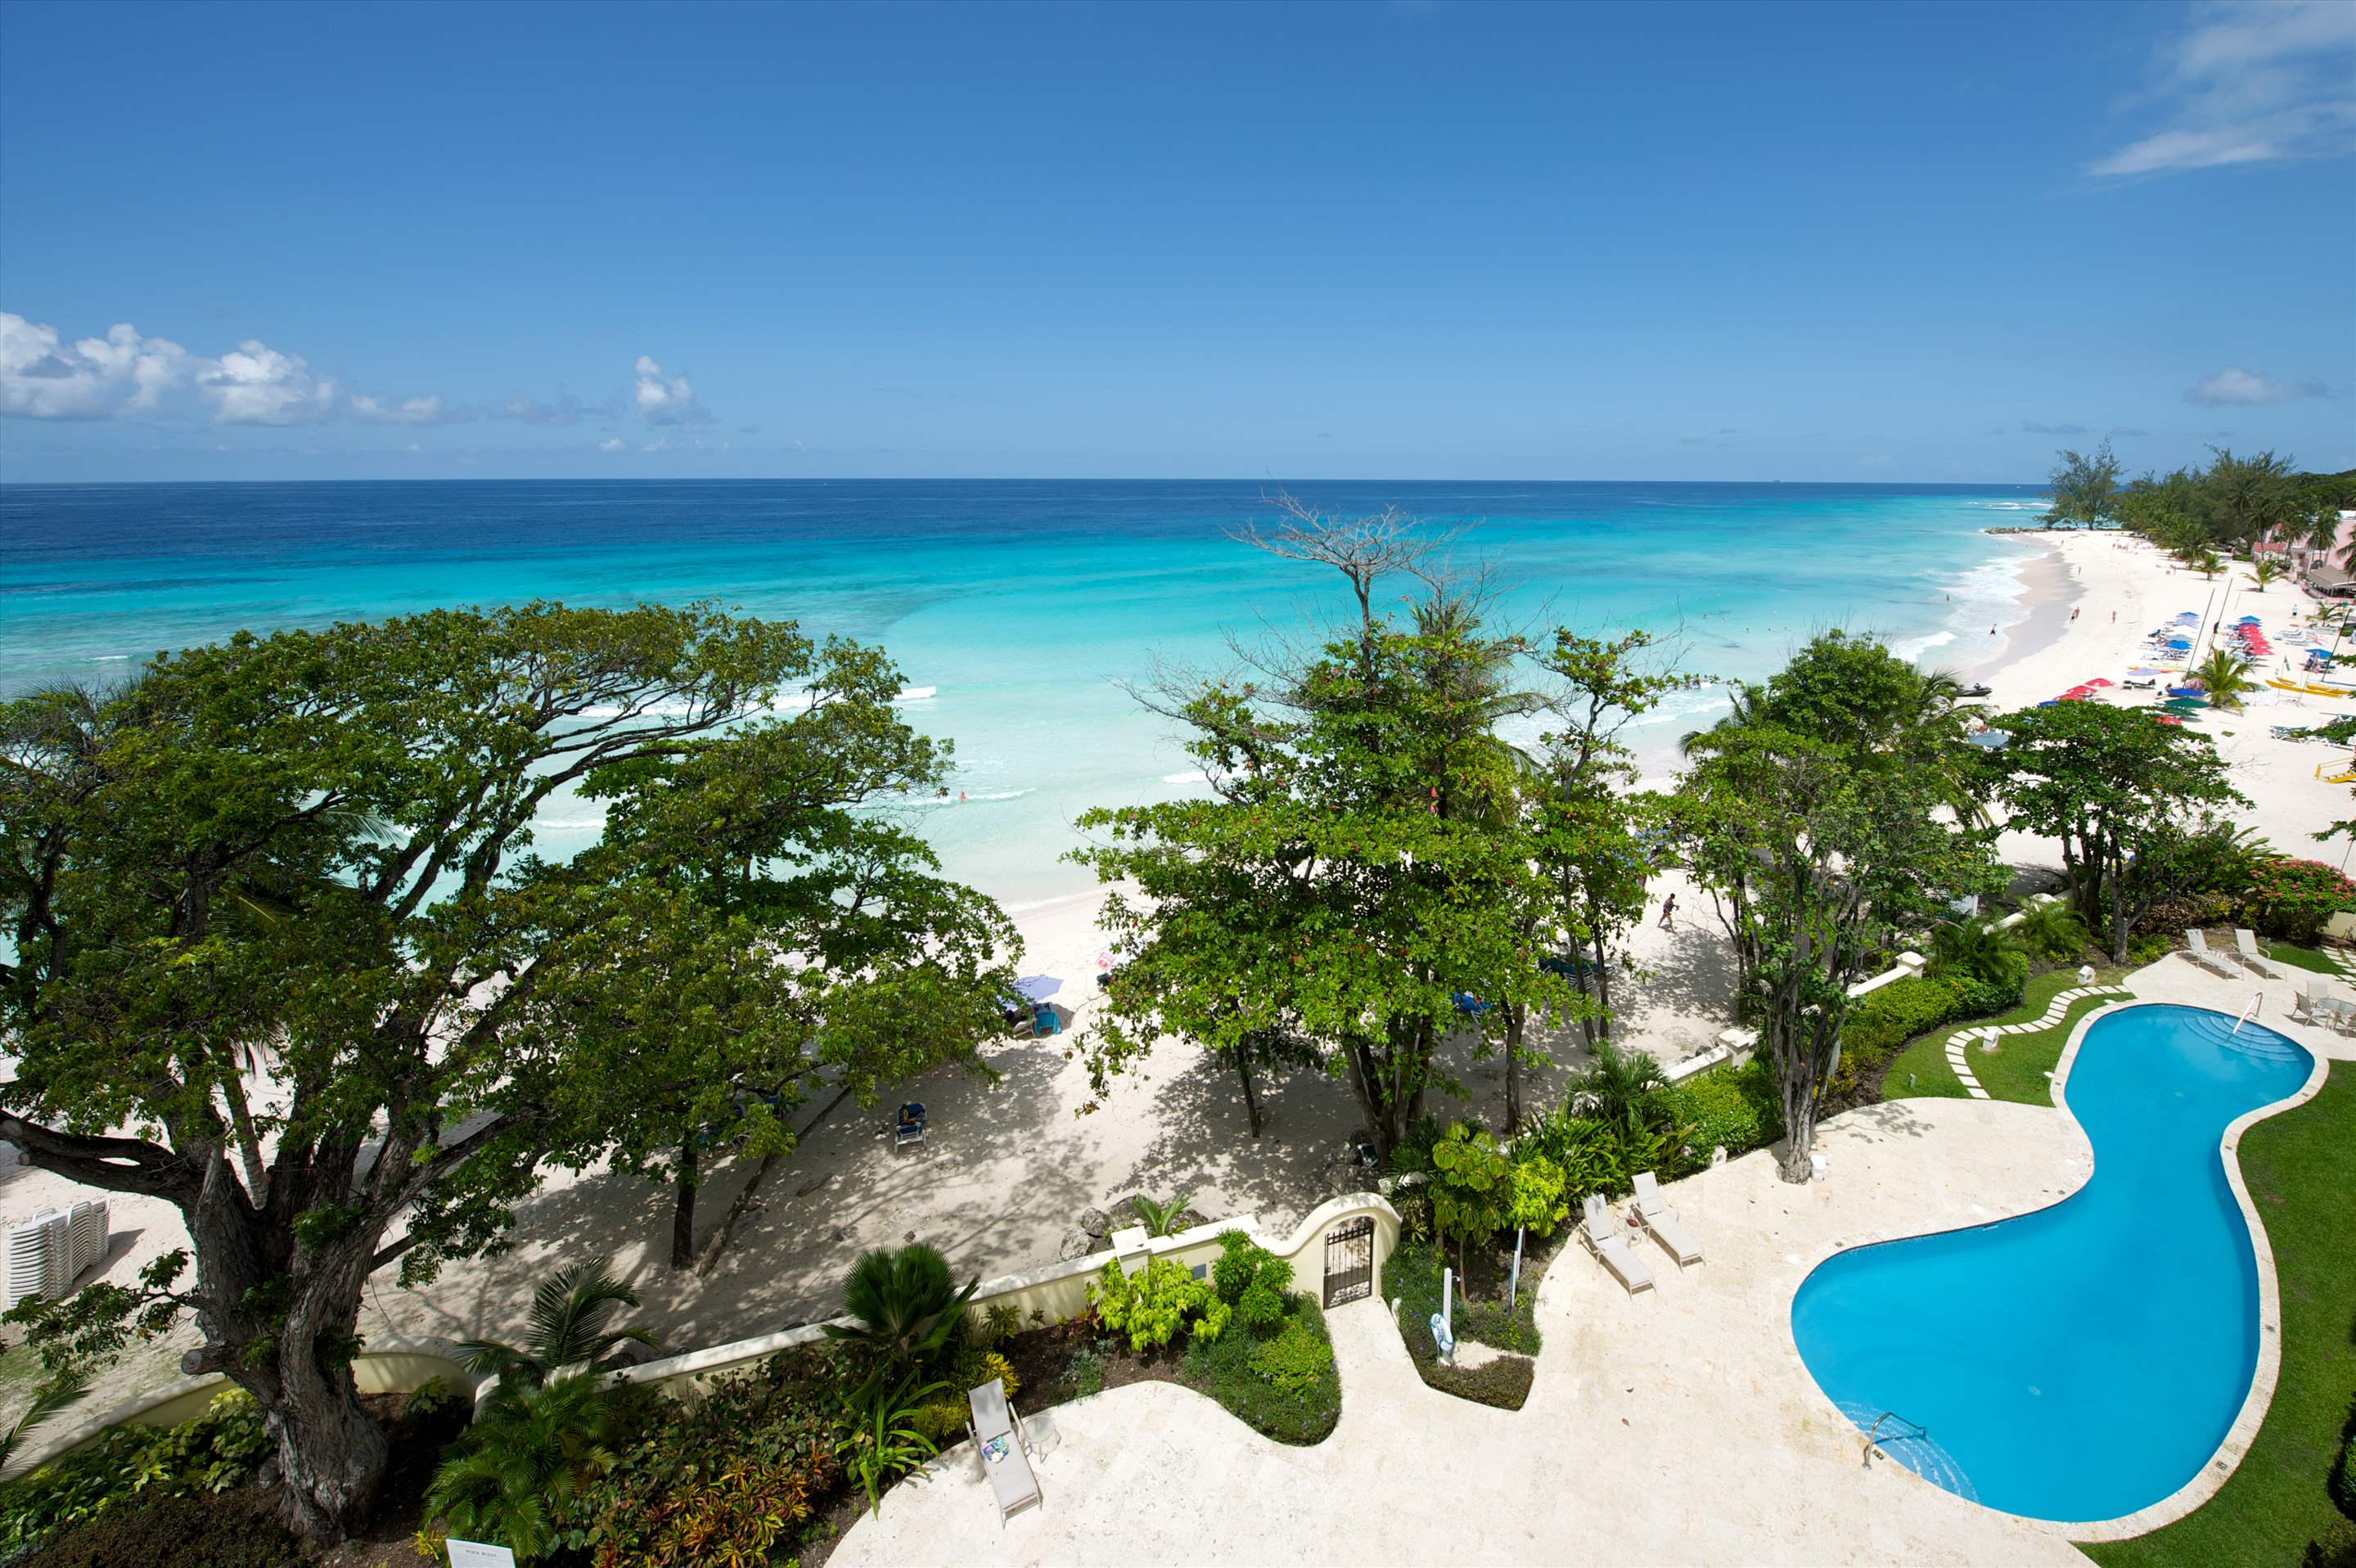 Sapphire Beach 509, 2 bedroom, 3 bedroom apartment in St. Lawrence Gap & South Coast, Barbados Photo #1